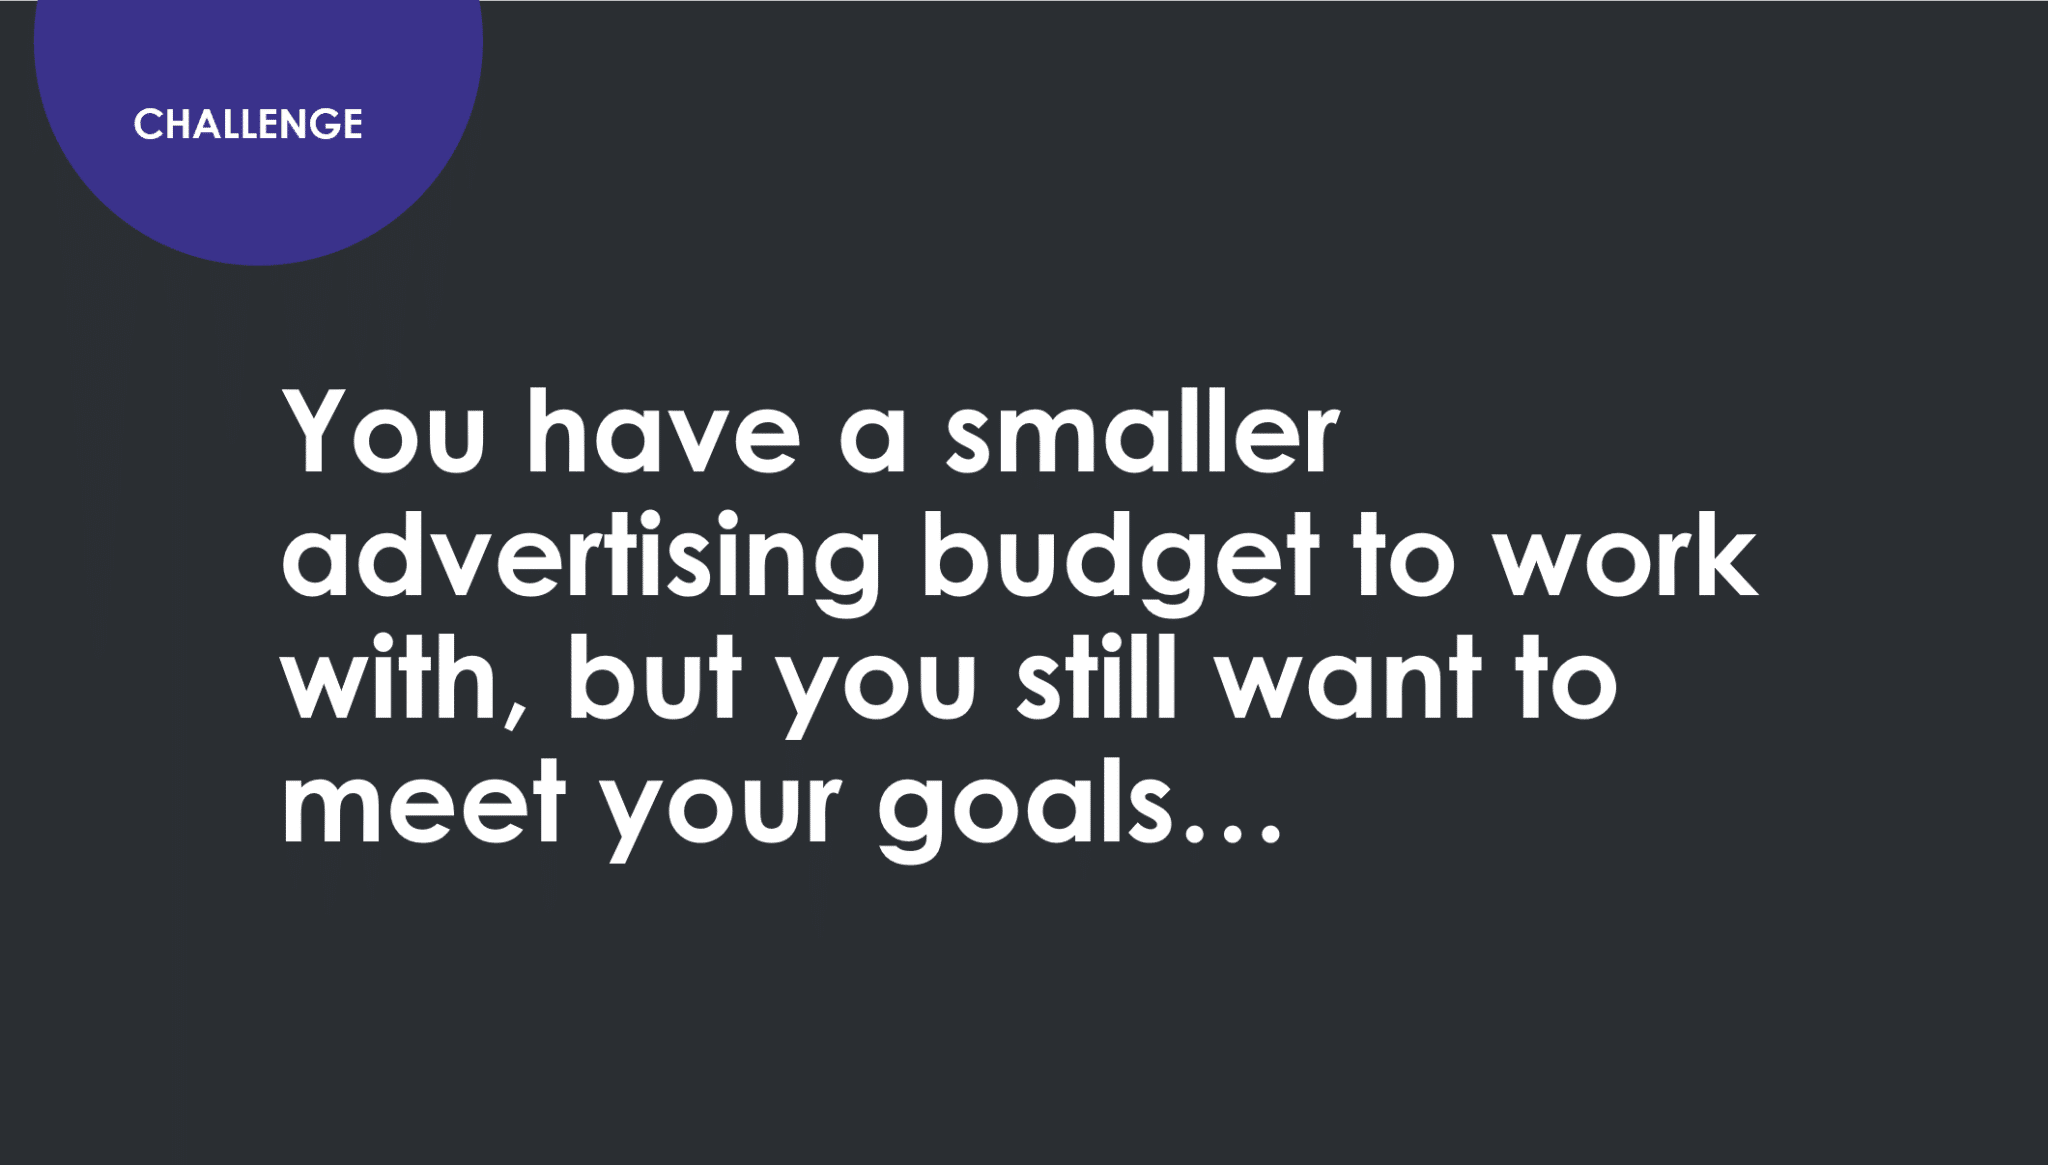 Challenge. You have a smaller advertising budget to work with but you still want to meet your goals.